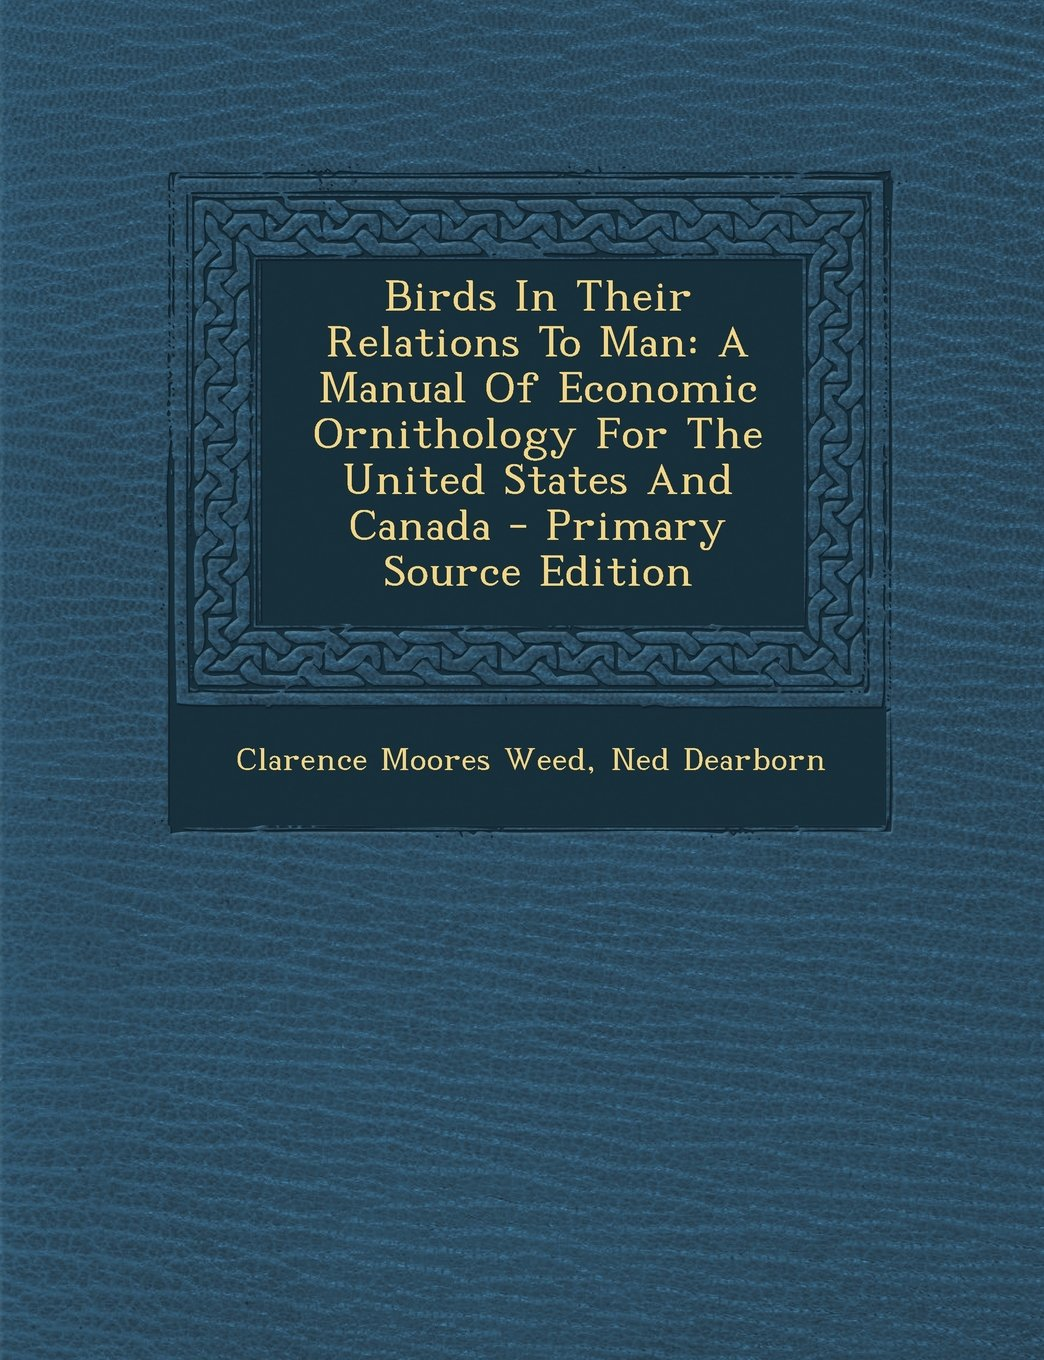 Read Online Birds In Their Relations To Man: A Manual Of Economic Ornithology For The United States And Canada - Primary Source Edition pdf